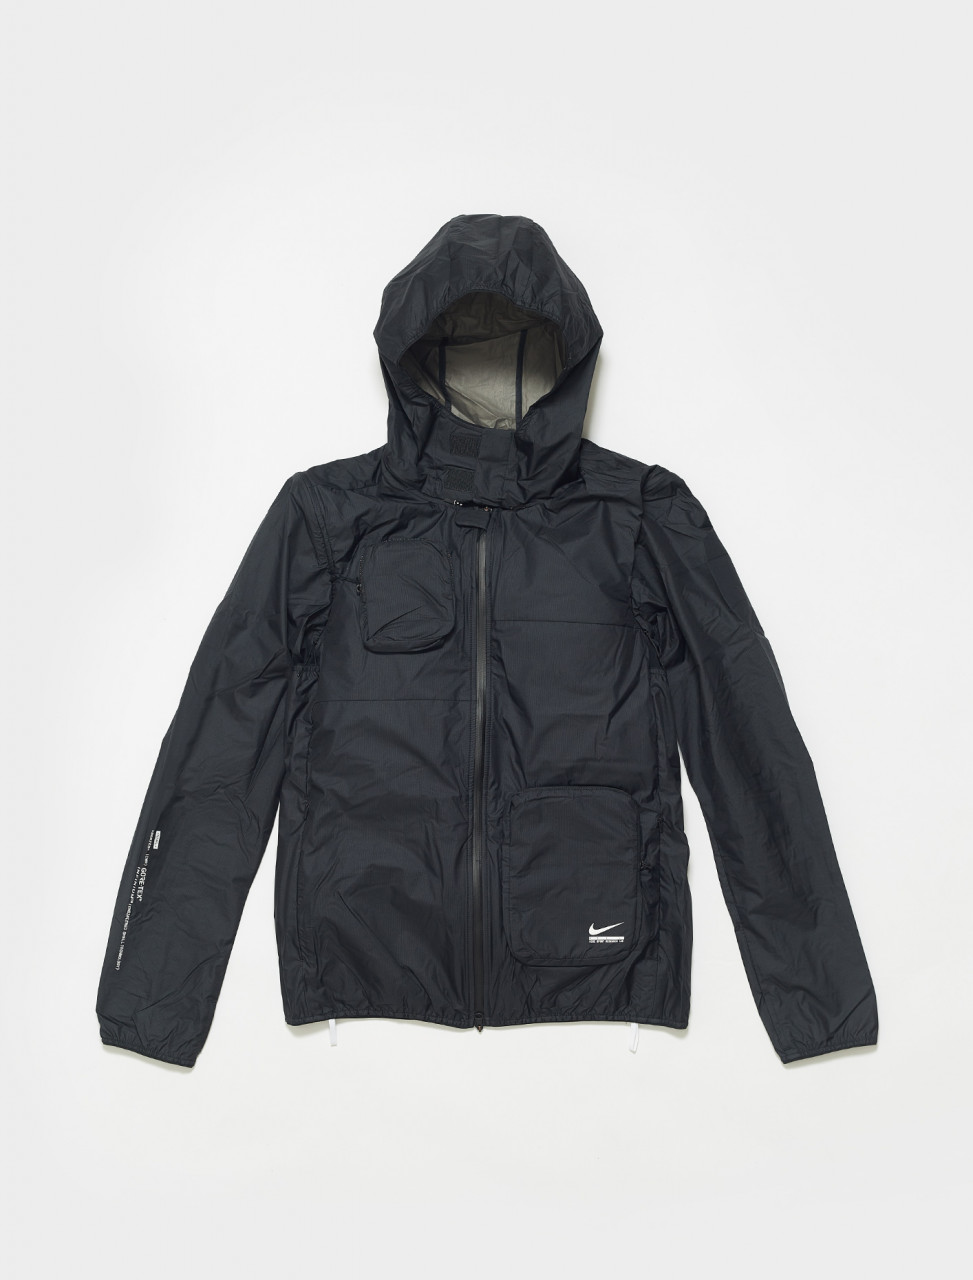 DB0818-010 NIKE MENS SPORTS RESEARCH LAB TRANSFORM JACKET BLACK